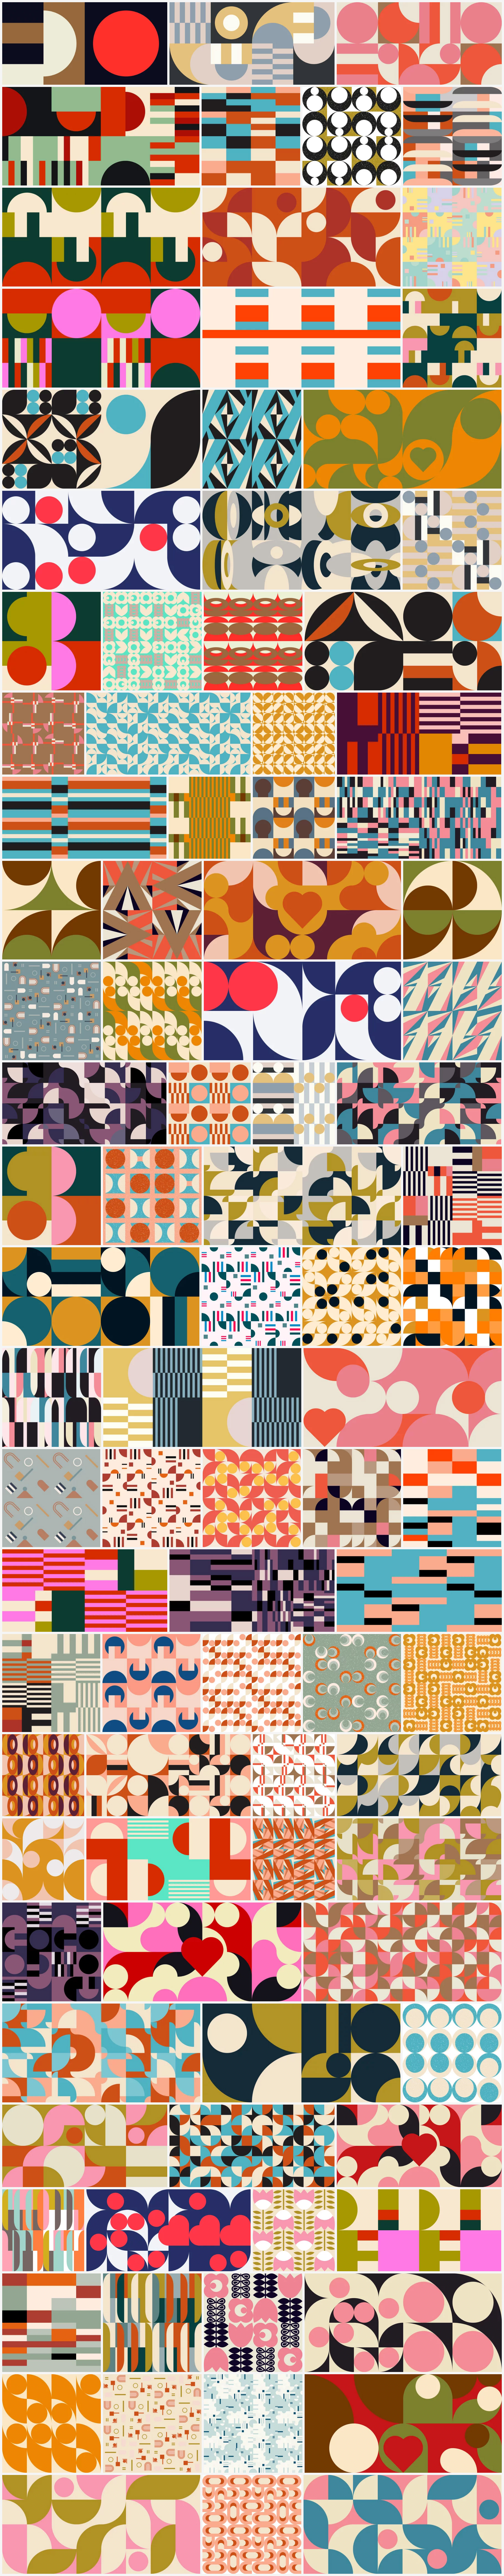 Modern, geometric vector background patterns for your graphic design projects.